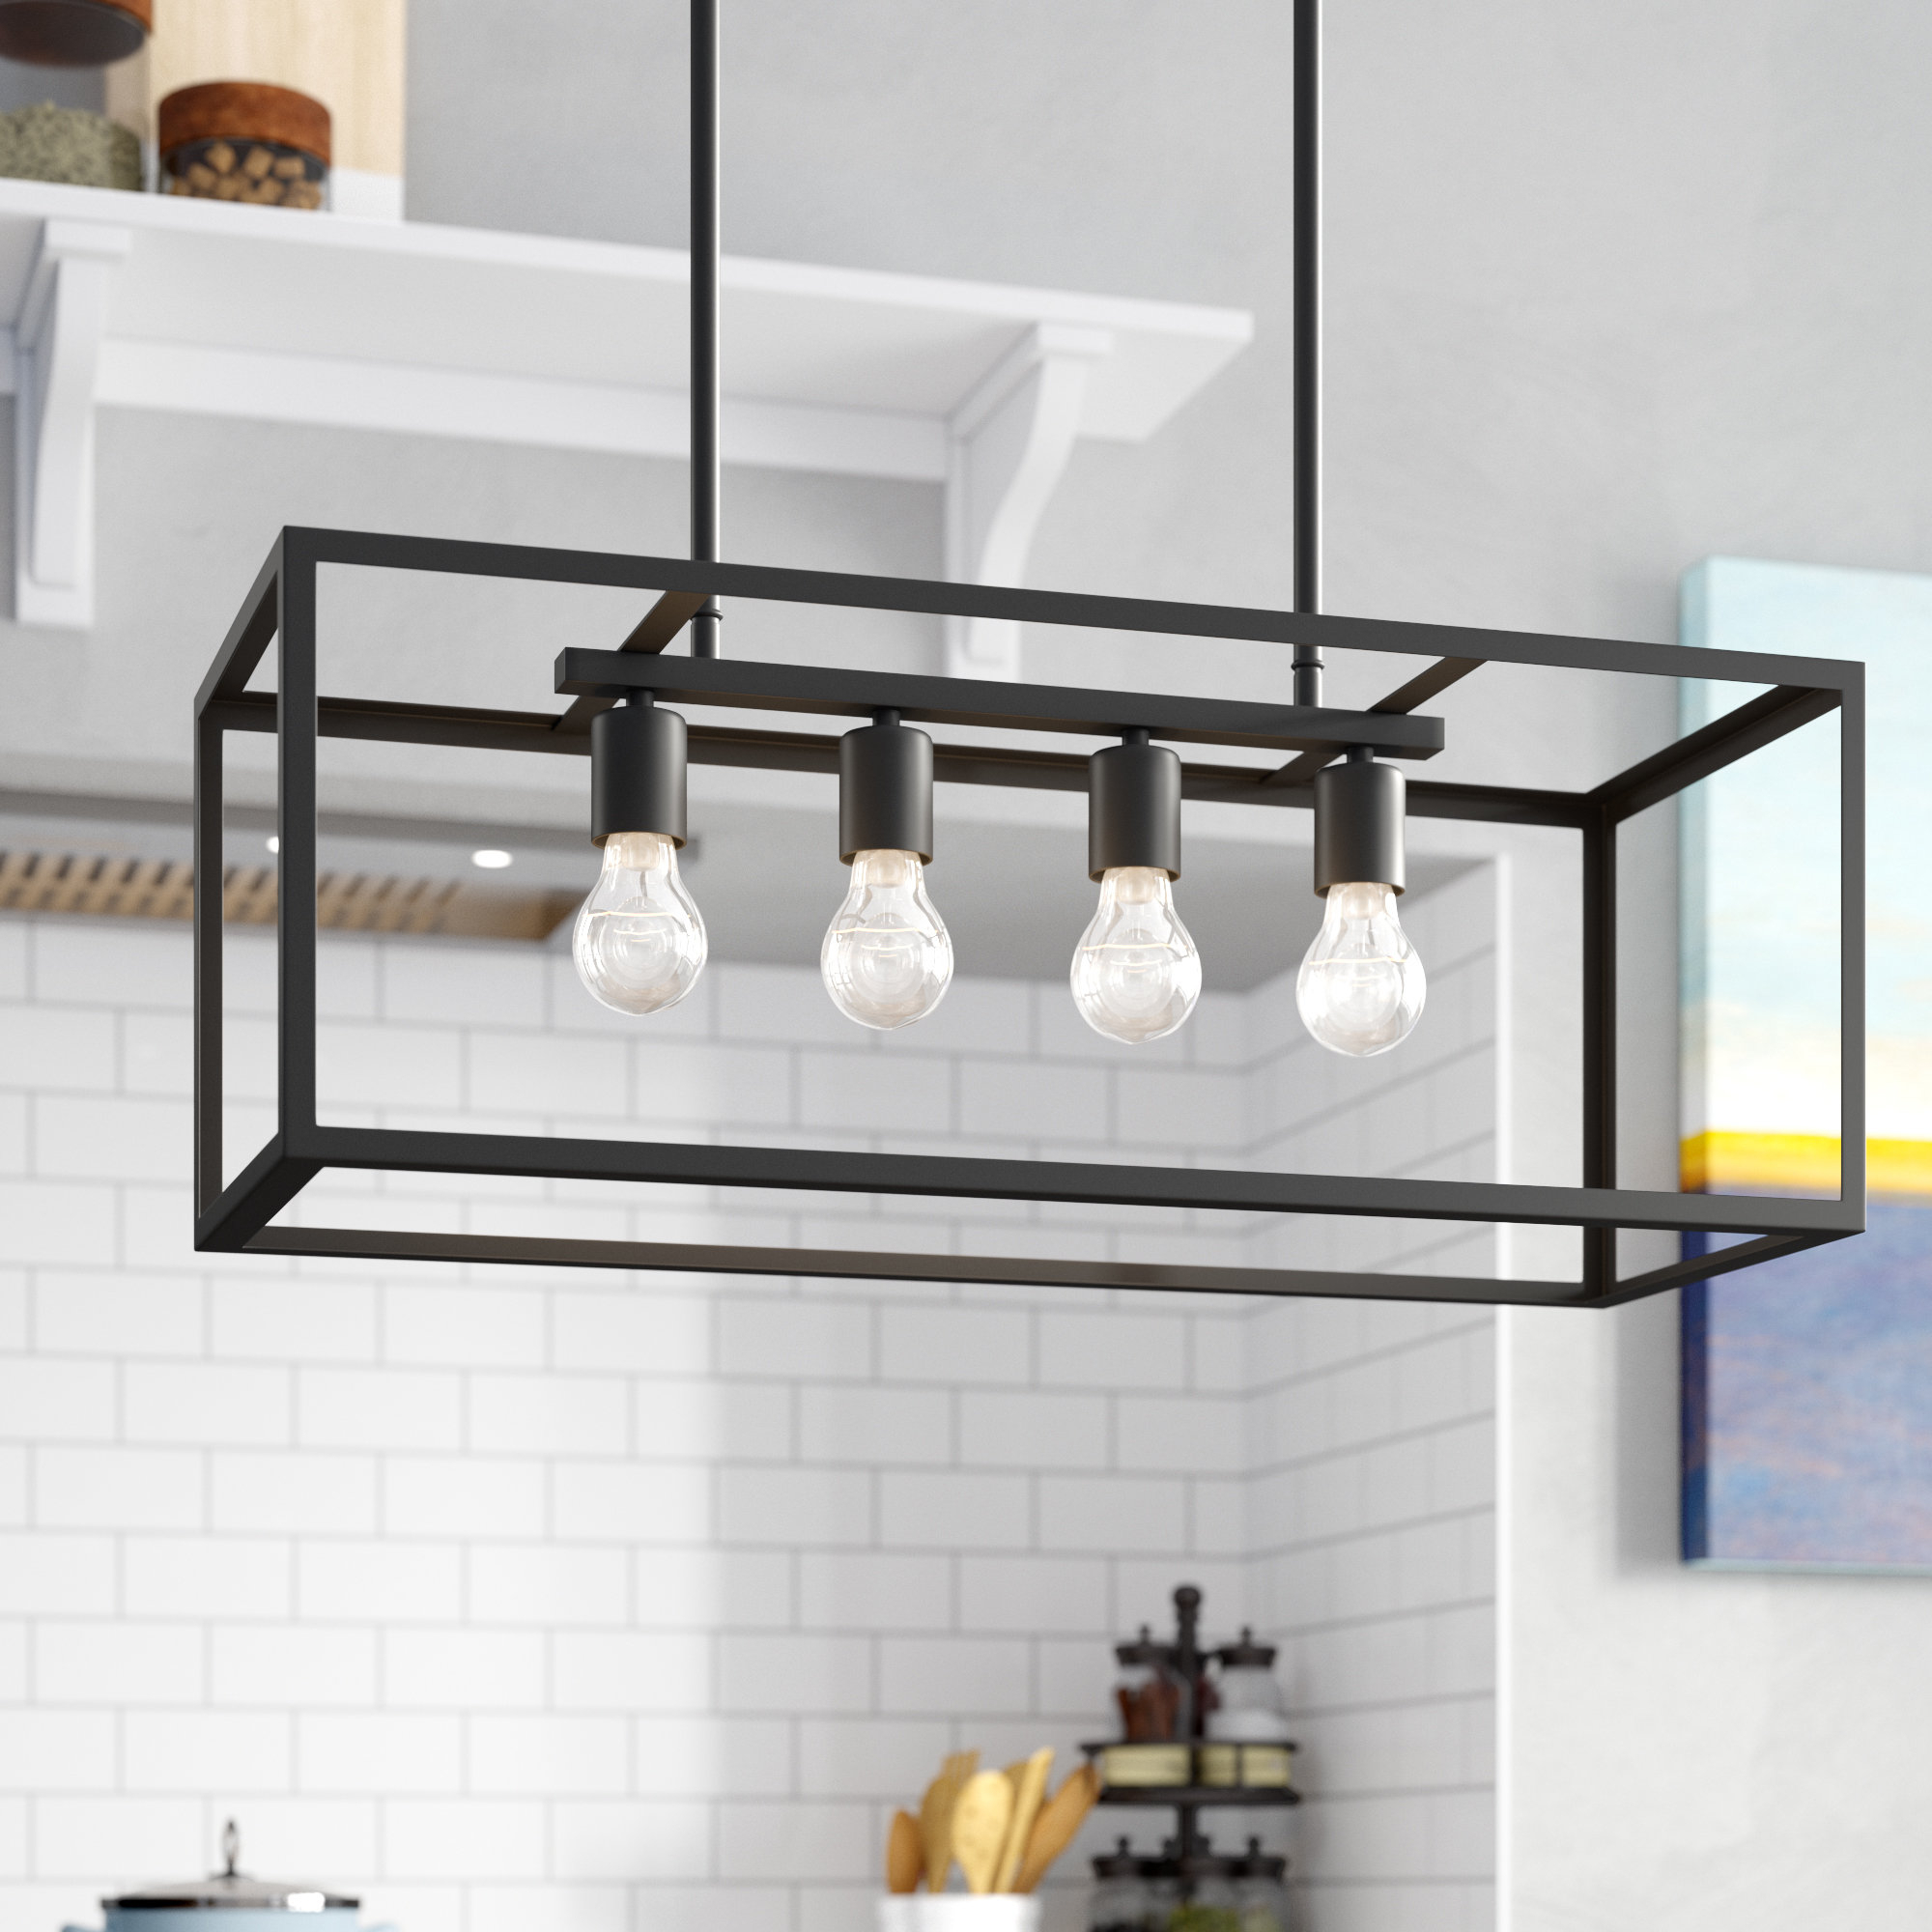 Ratner 4 Light Kitchen Island Linear Pendant Intended For Sousa 4 Light Kitchen Island Linear Pendants (View 3 of 30)